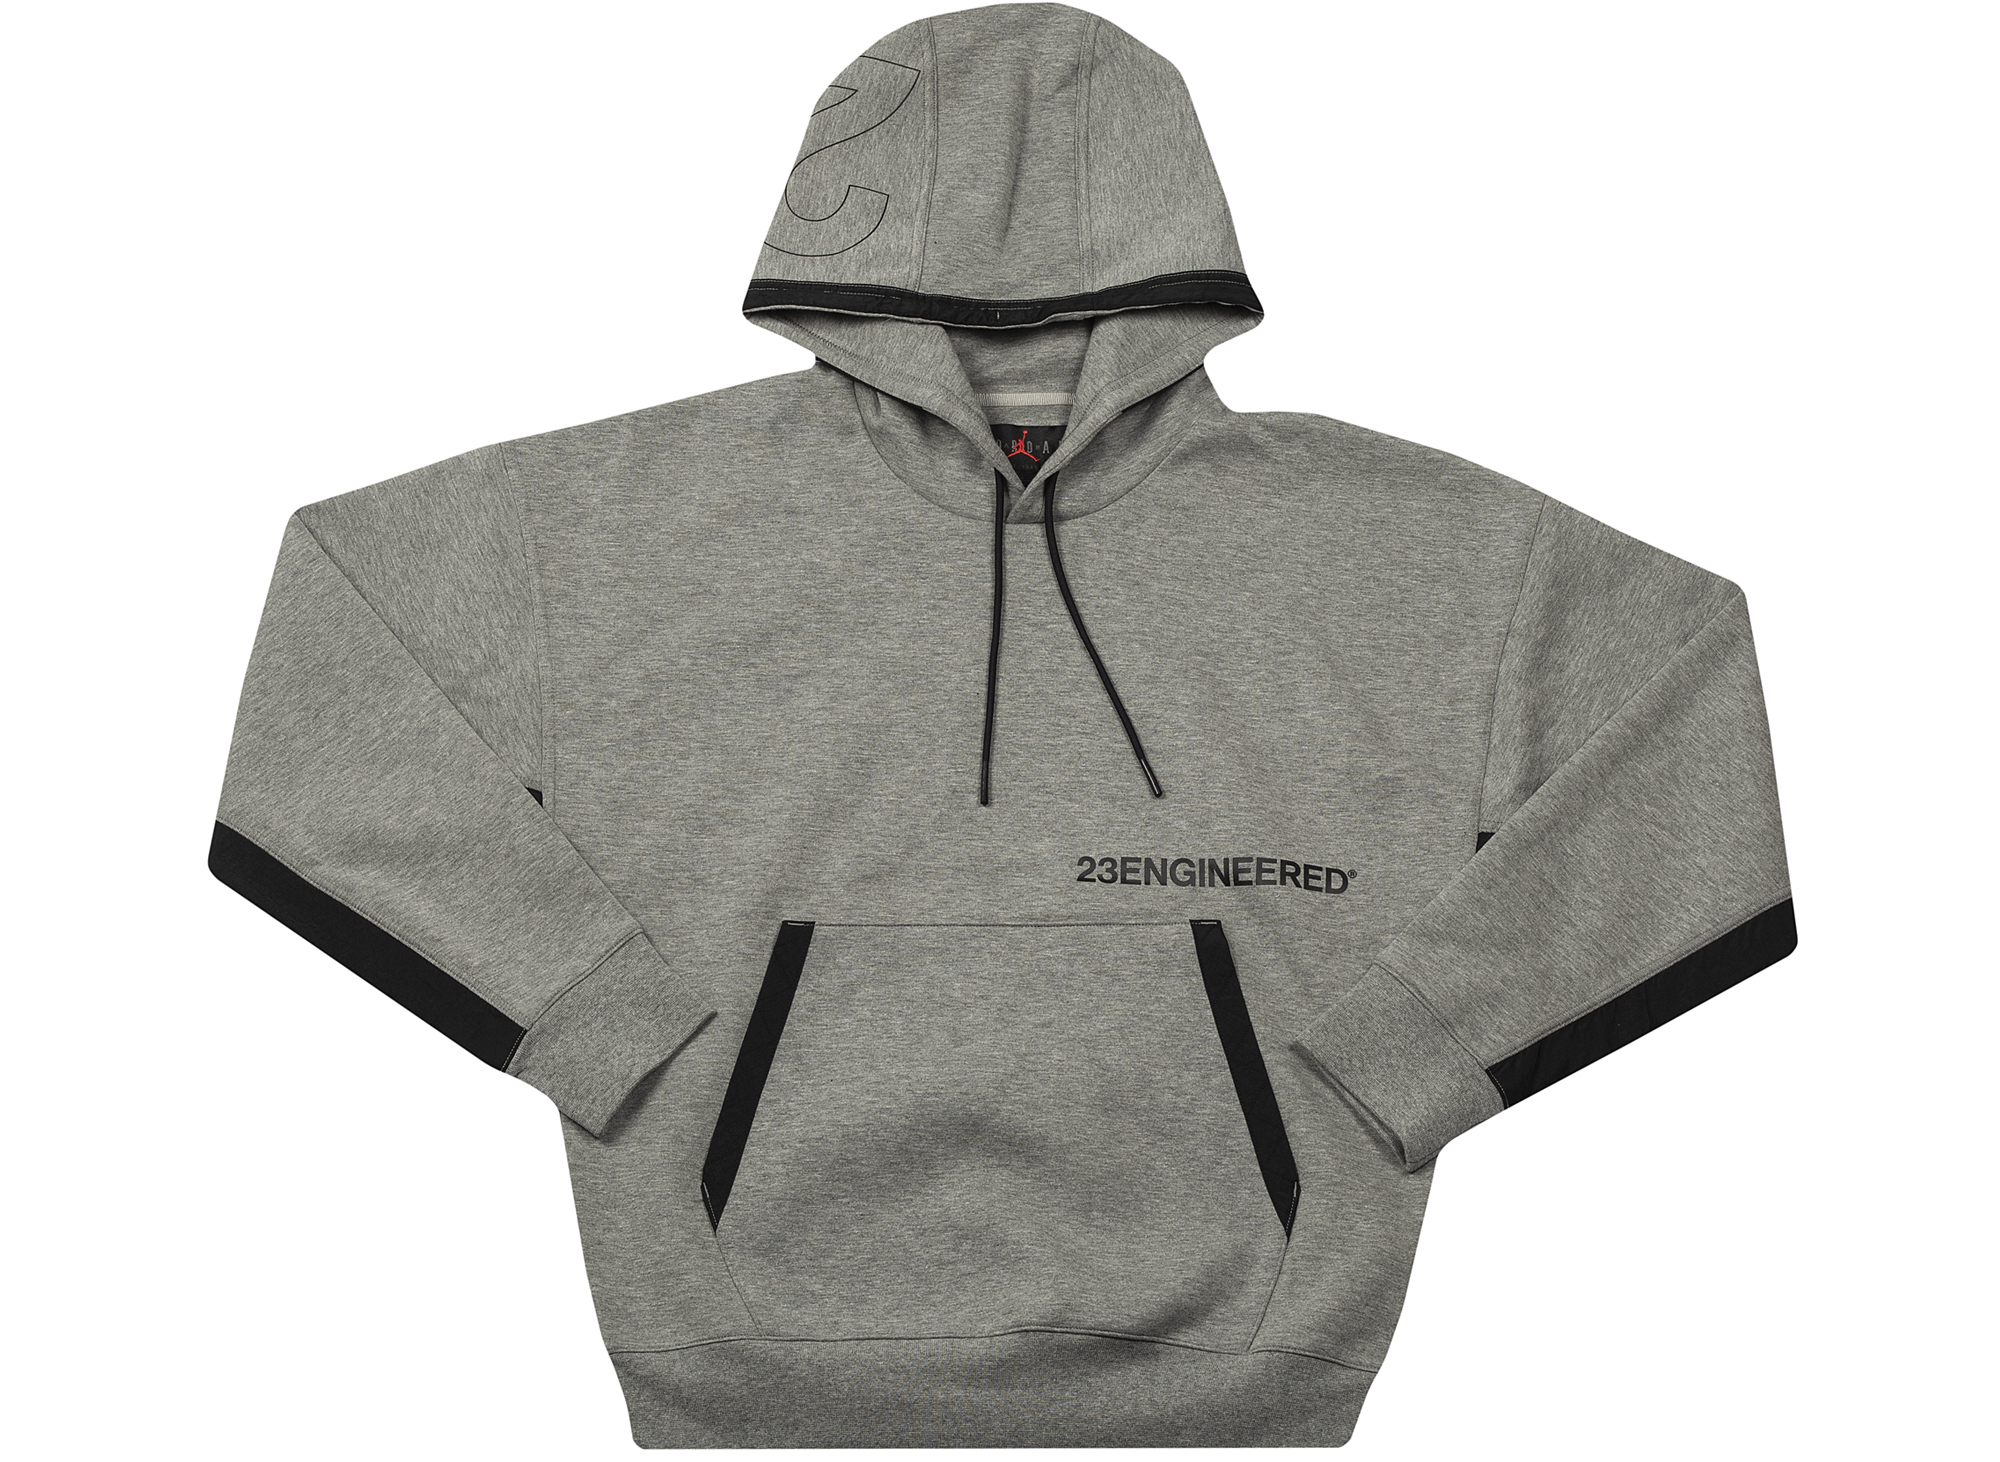 Jordan 23 Engineered Hooded Sweatshirt